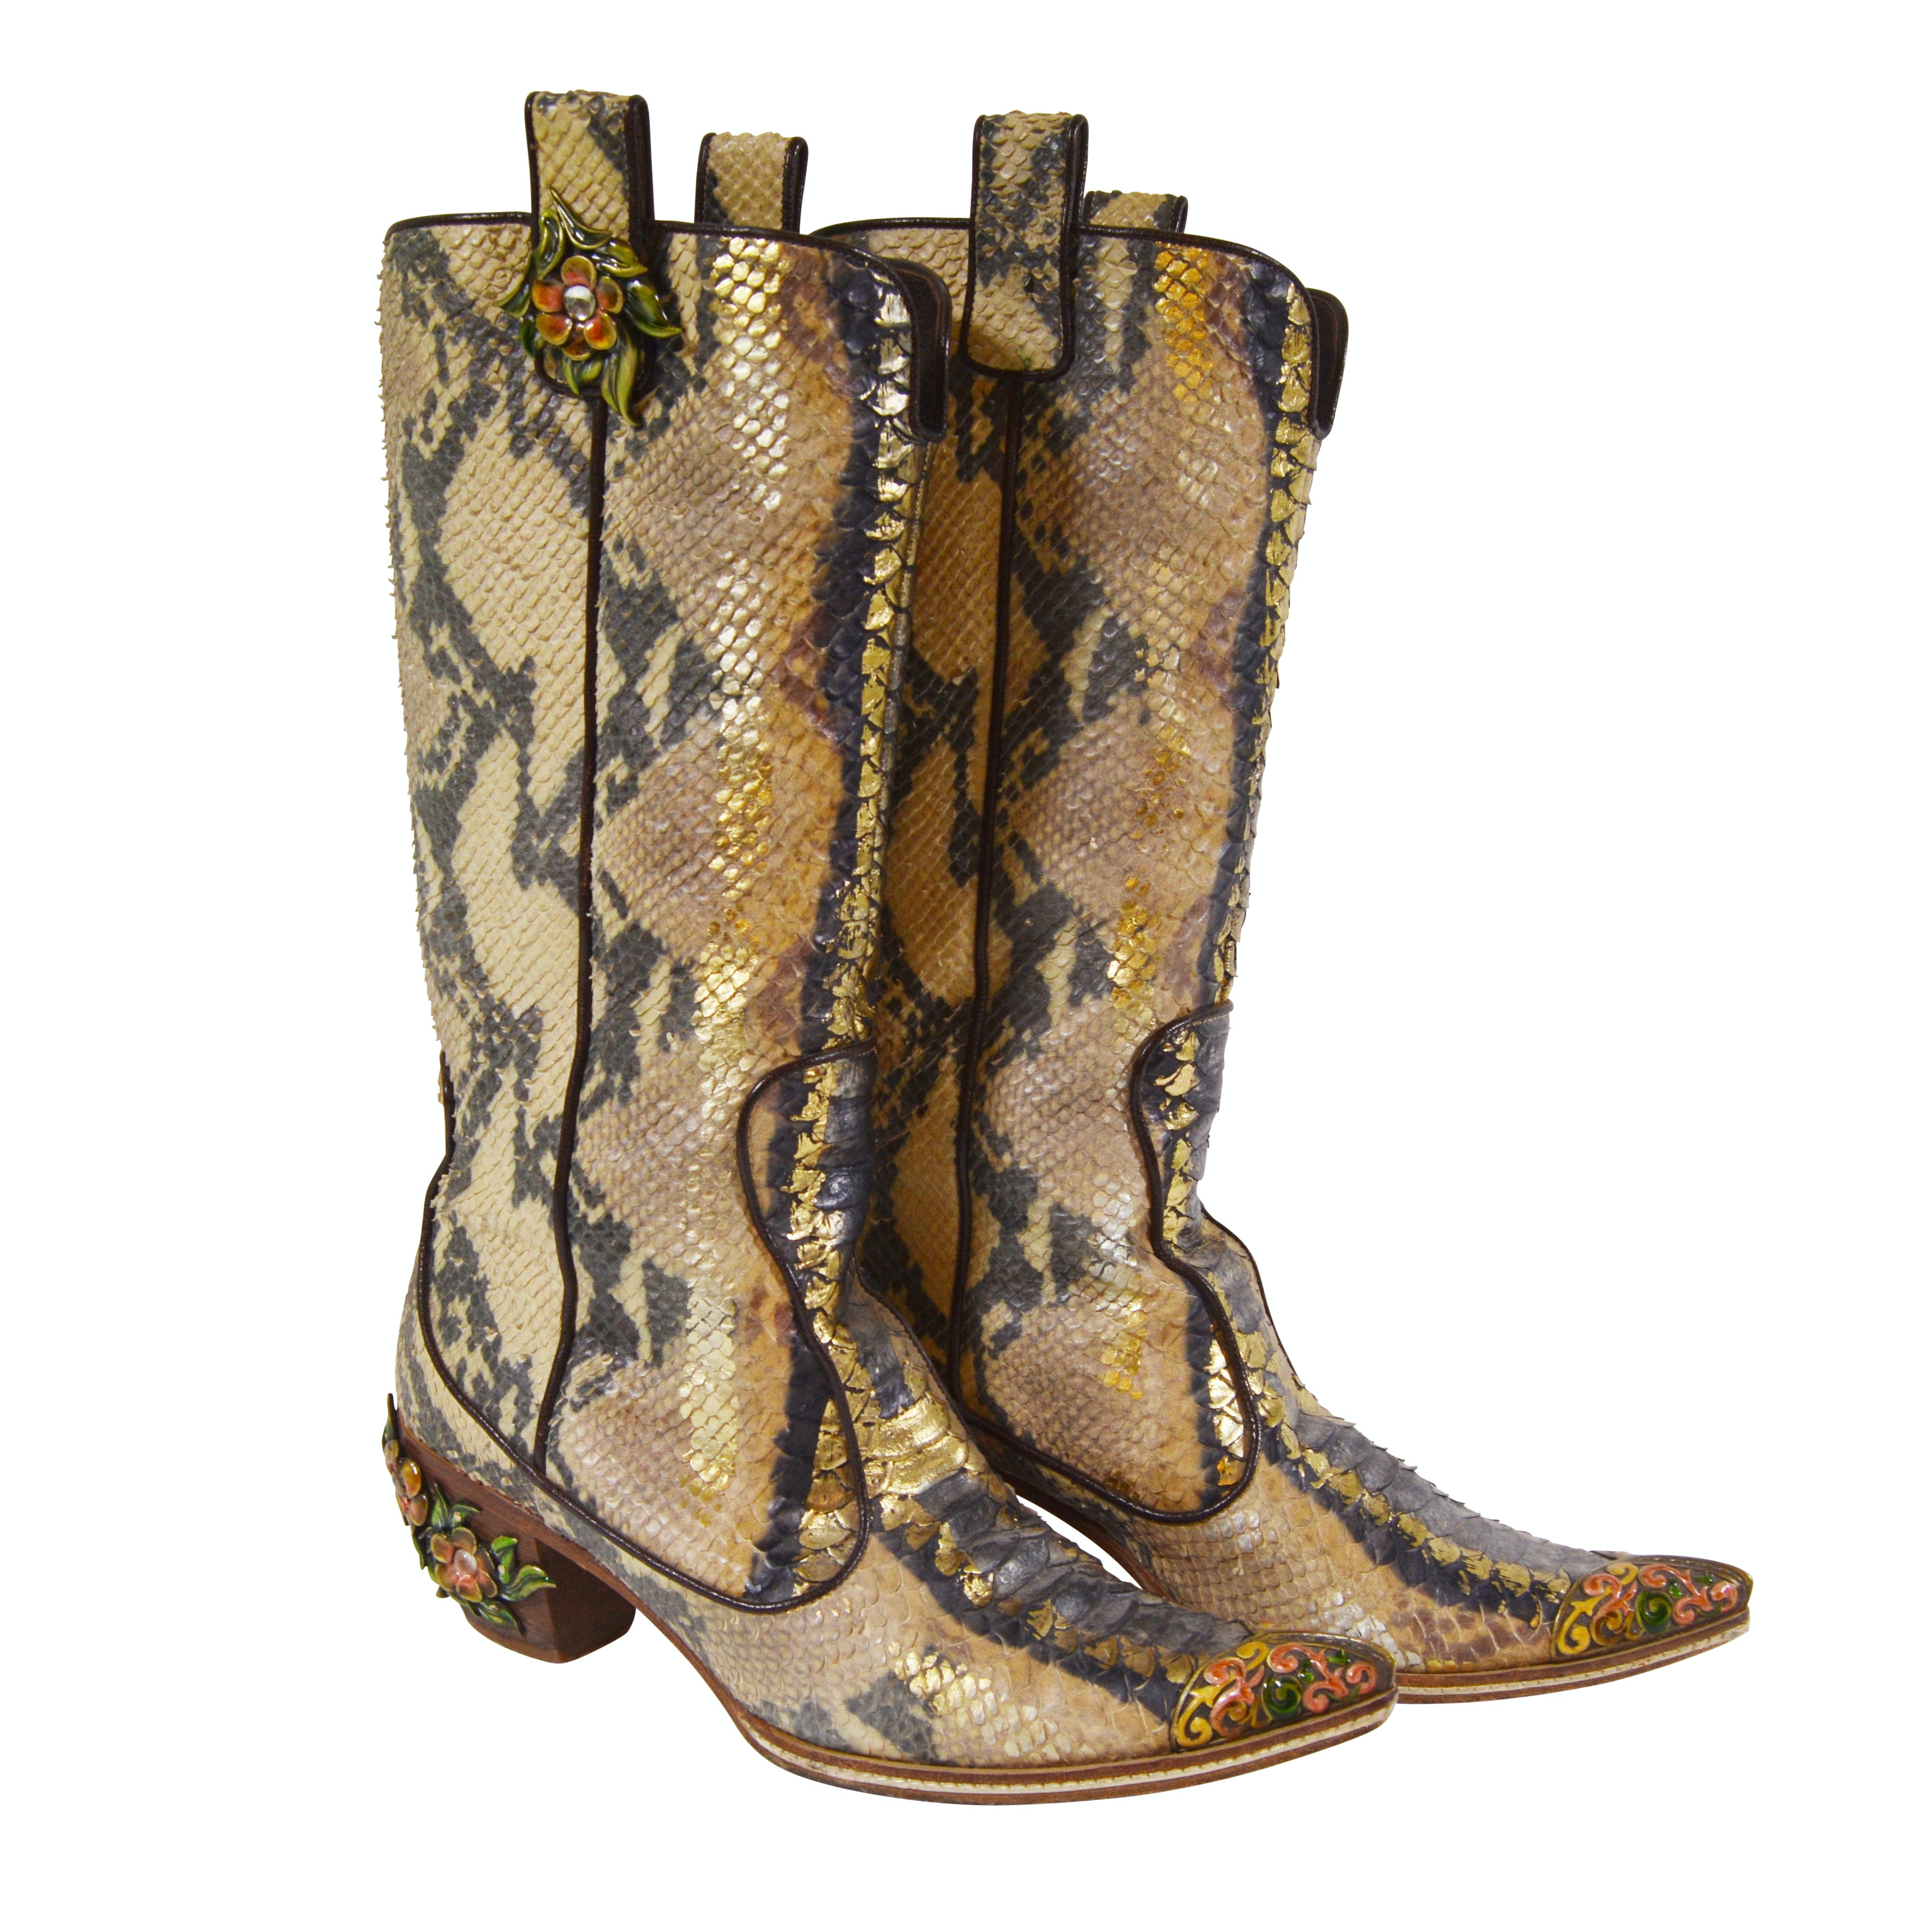 Giuseppe Zanotti Vincini Python Skin Western Boots with Enameled Florals